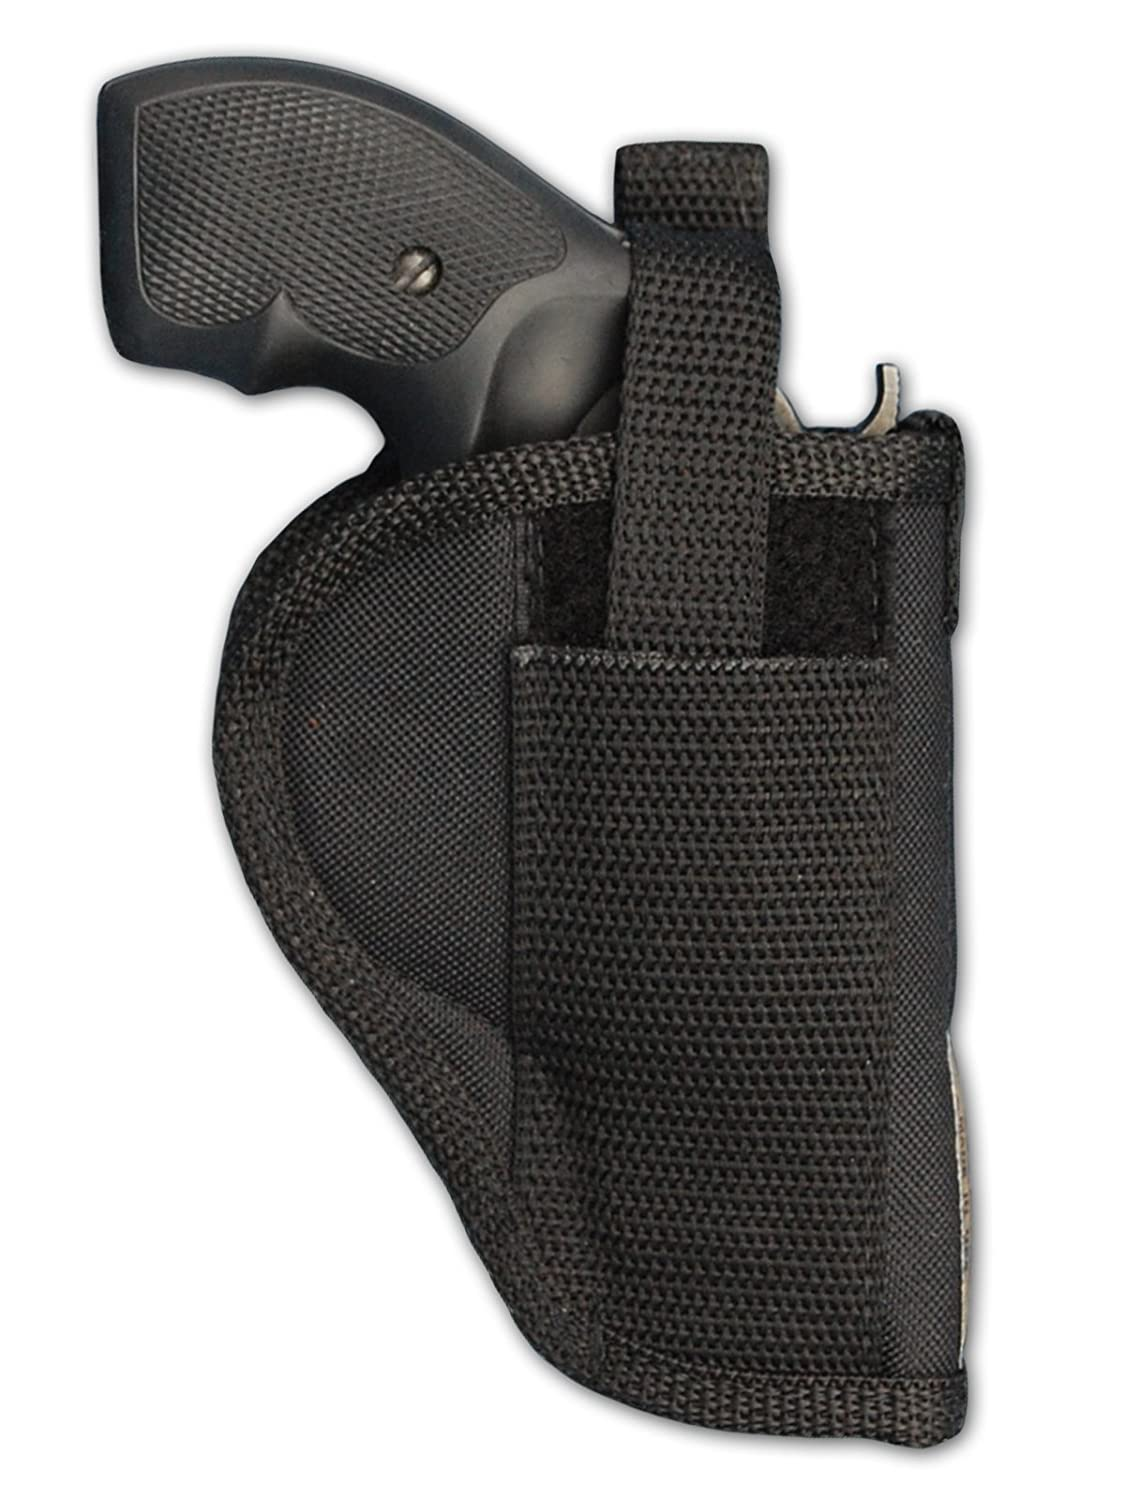 Barsony Holsters and Belts Charter Arms Colt Ruger S&W Taurus Small/Medium .22 .38 .44 .357 Revolver Draw Outside The Waist Band, Black, Right Hand, Size 3 Barsony Holsters & Belts 53-2-Size3